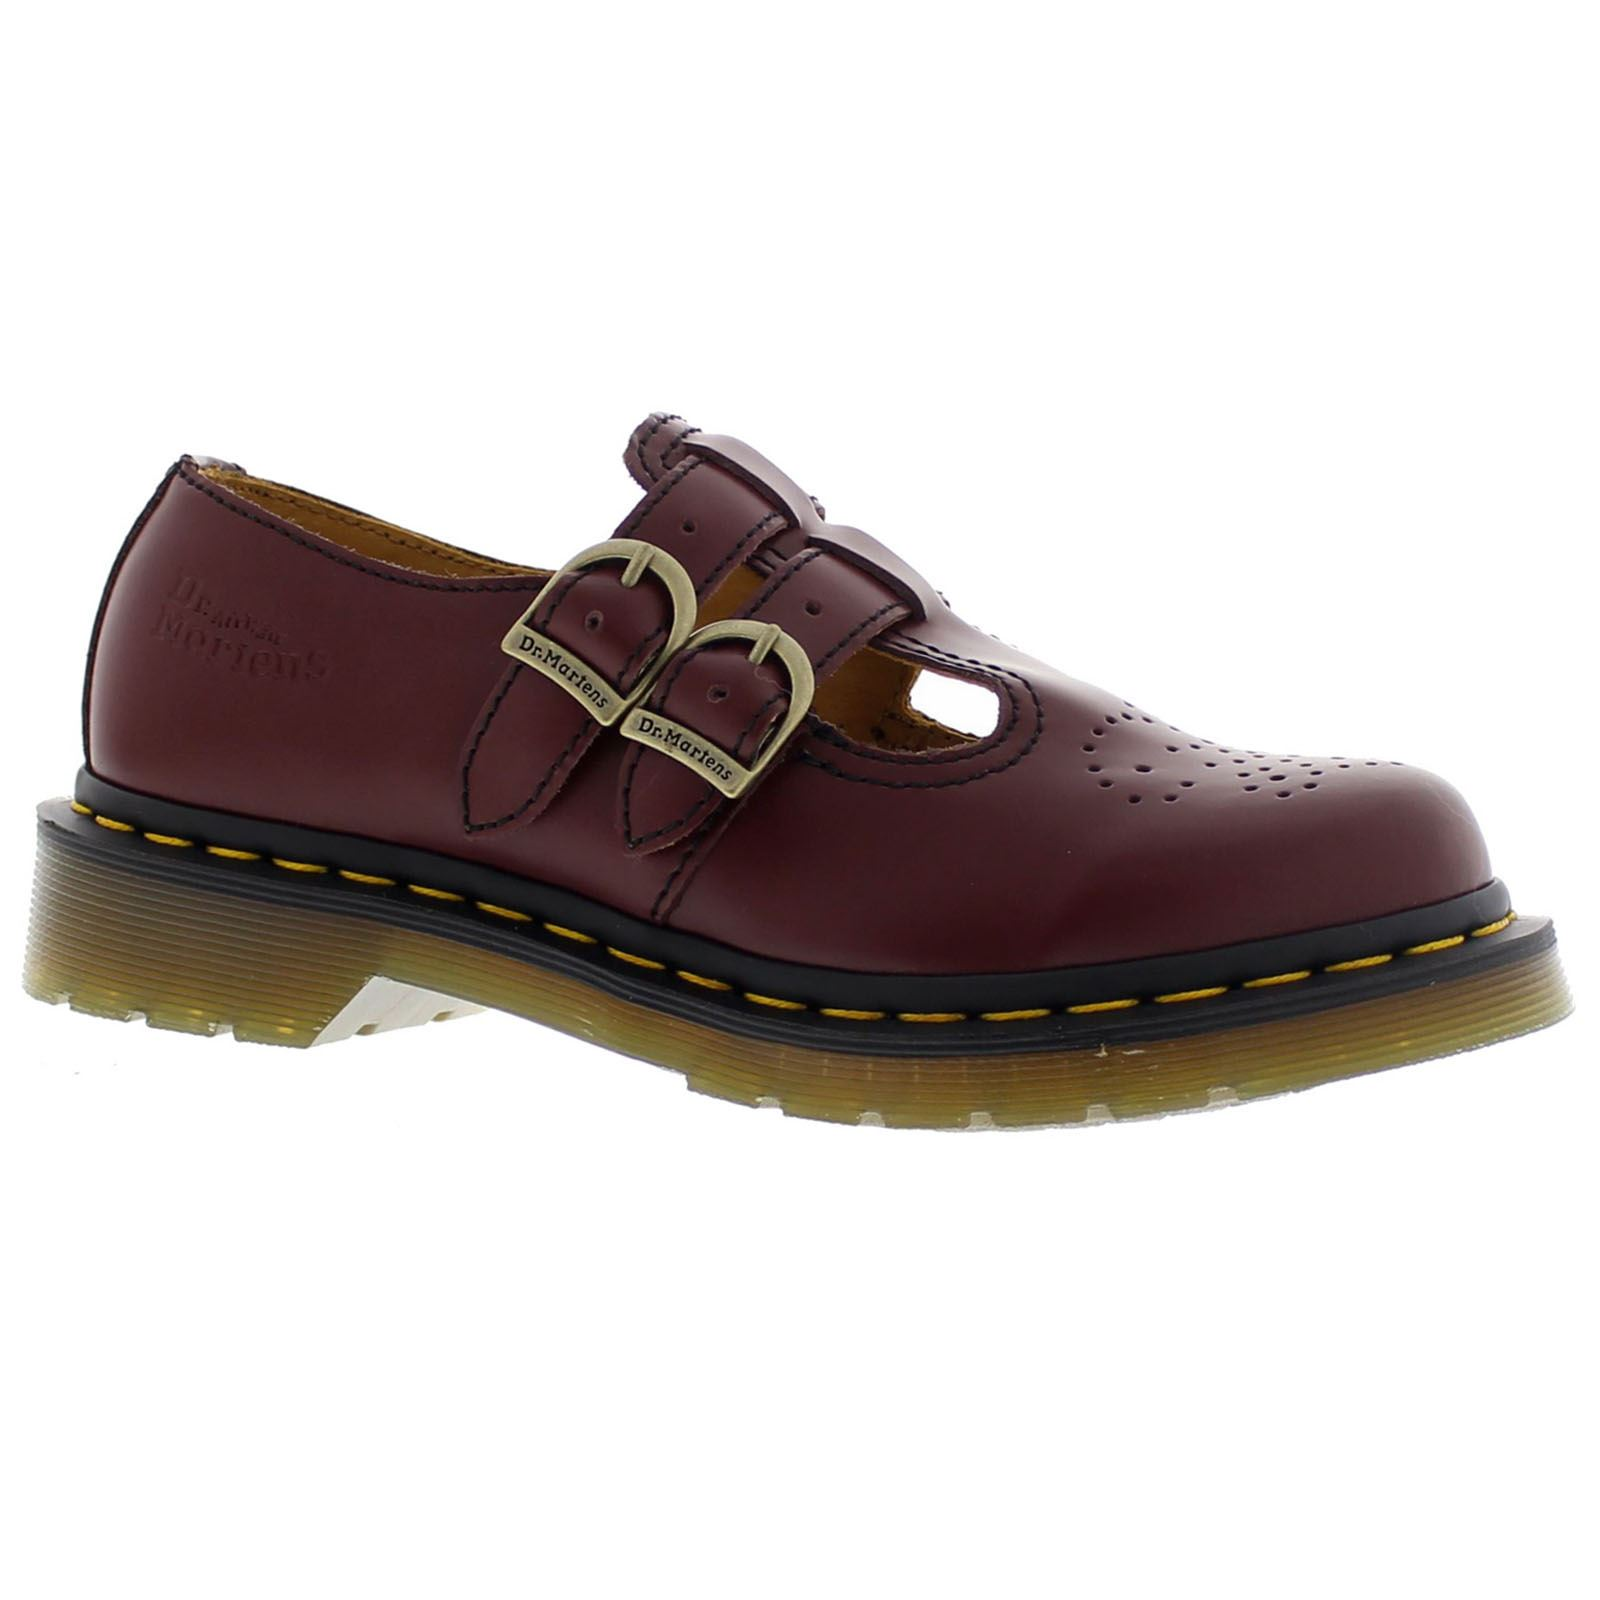 dr martens 8065 mary jane smooth cherry womens shoes ebay. Black Bedroom Furniture Sets. Home Design Ideas